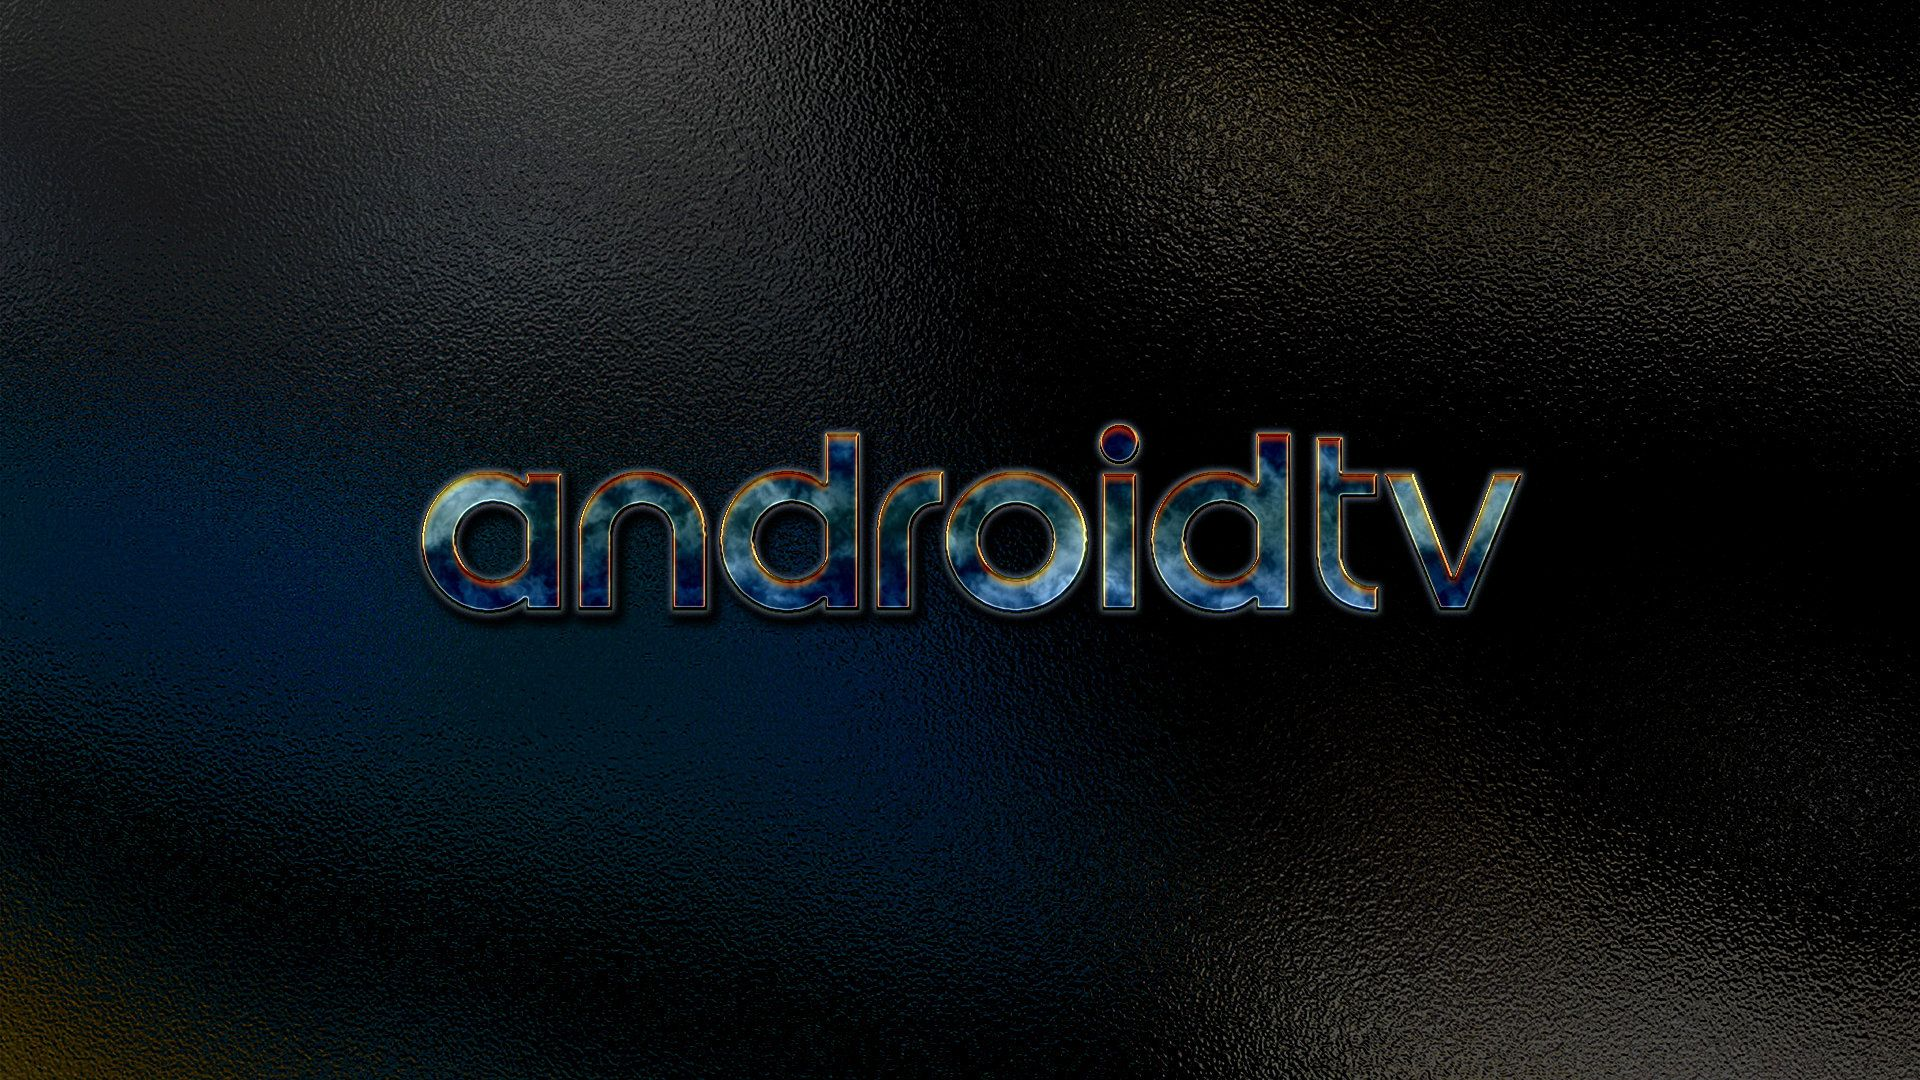 Awesome 4k Wallpaper Android Tv wallpapers to download for free greenvirals